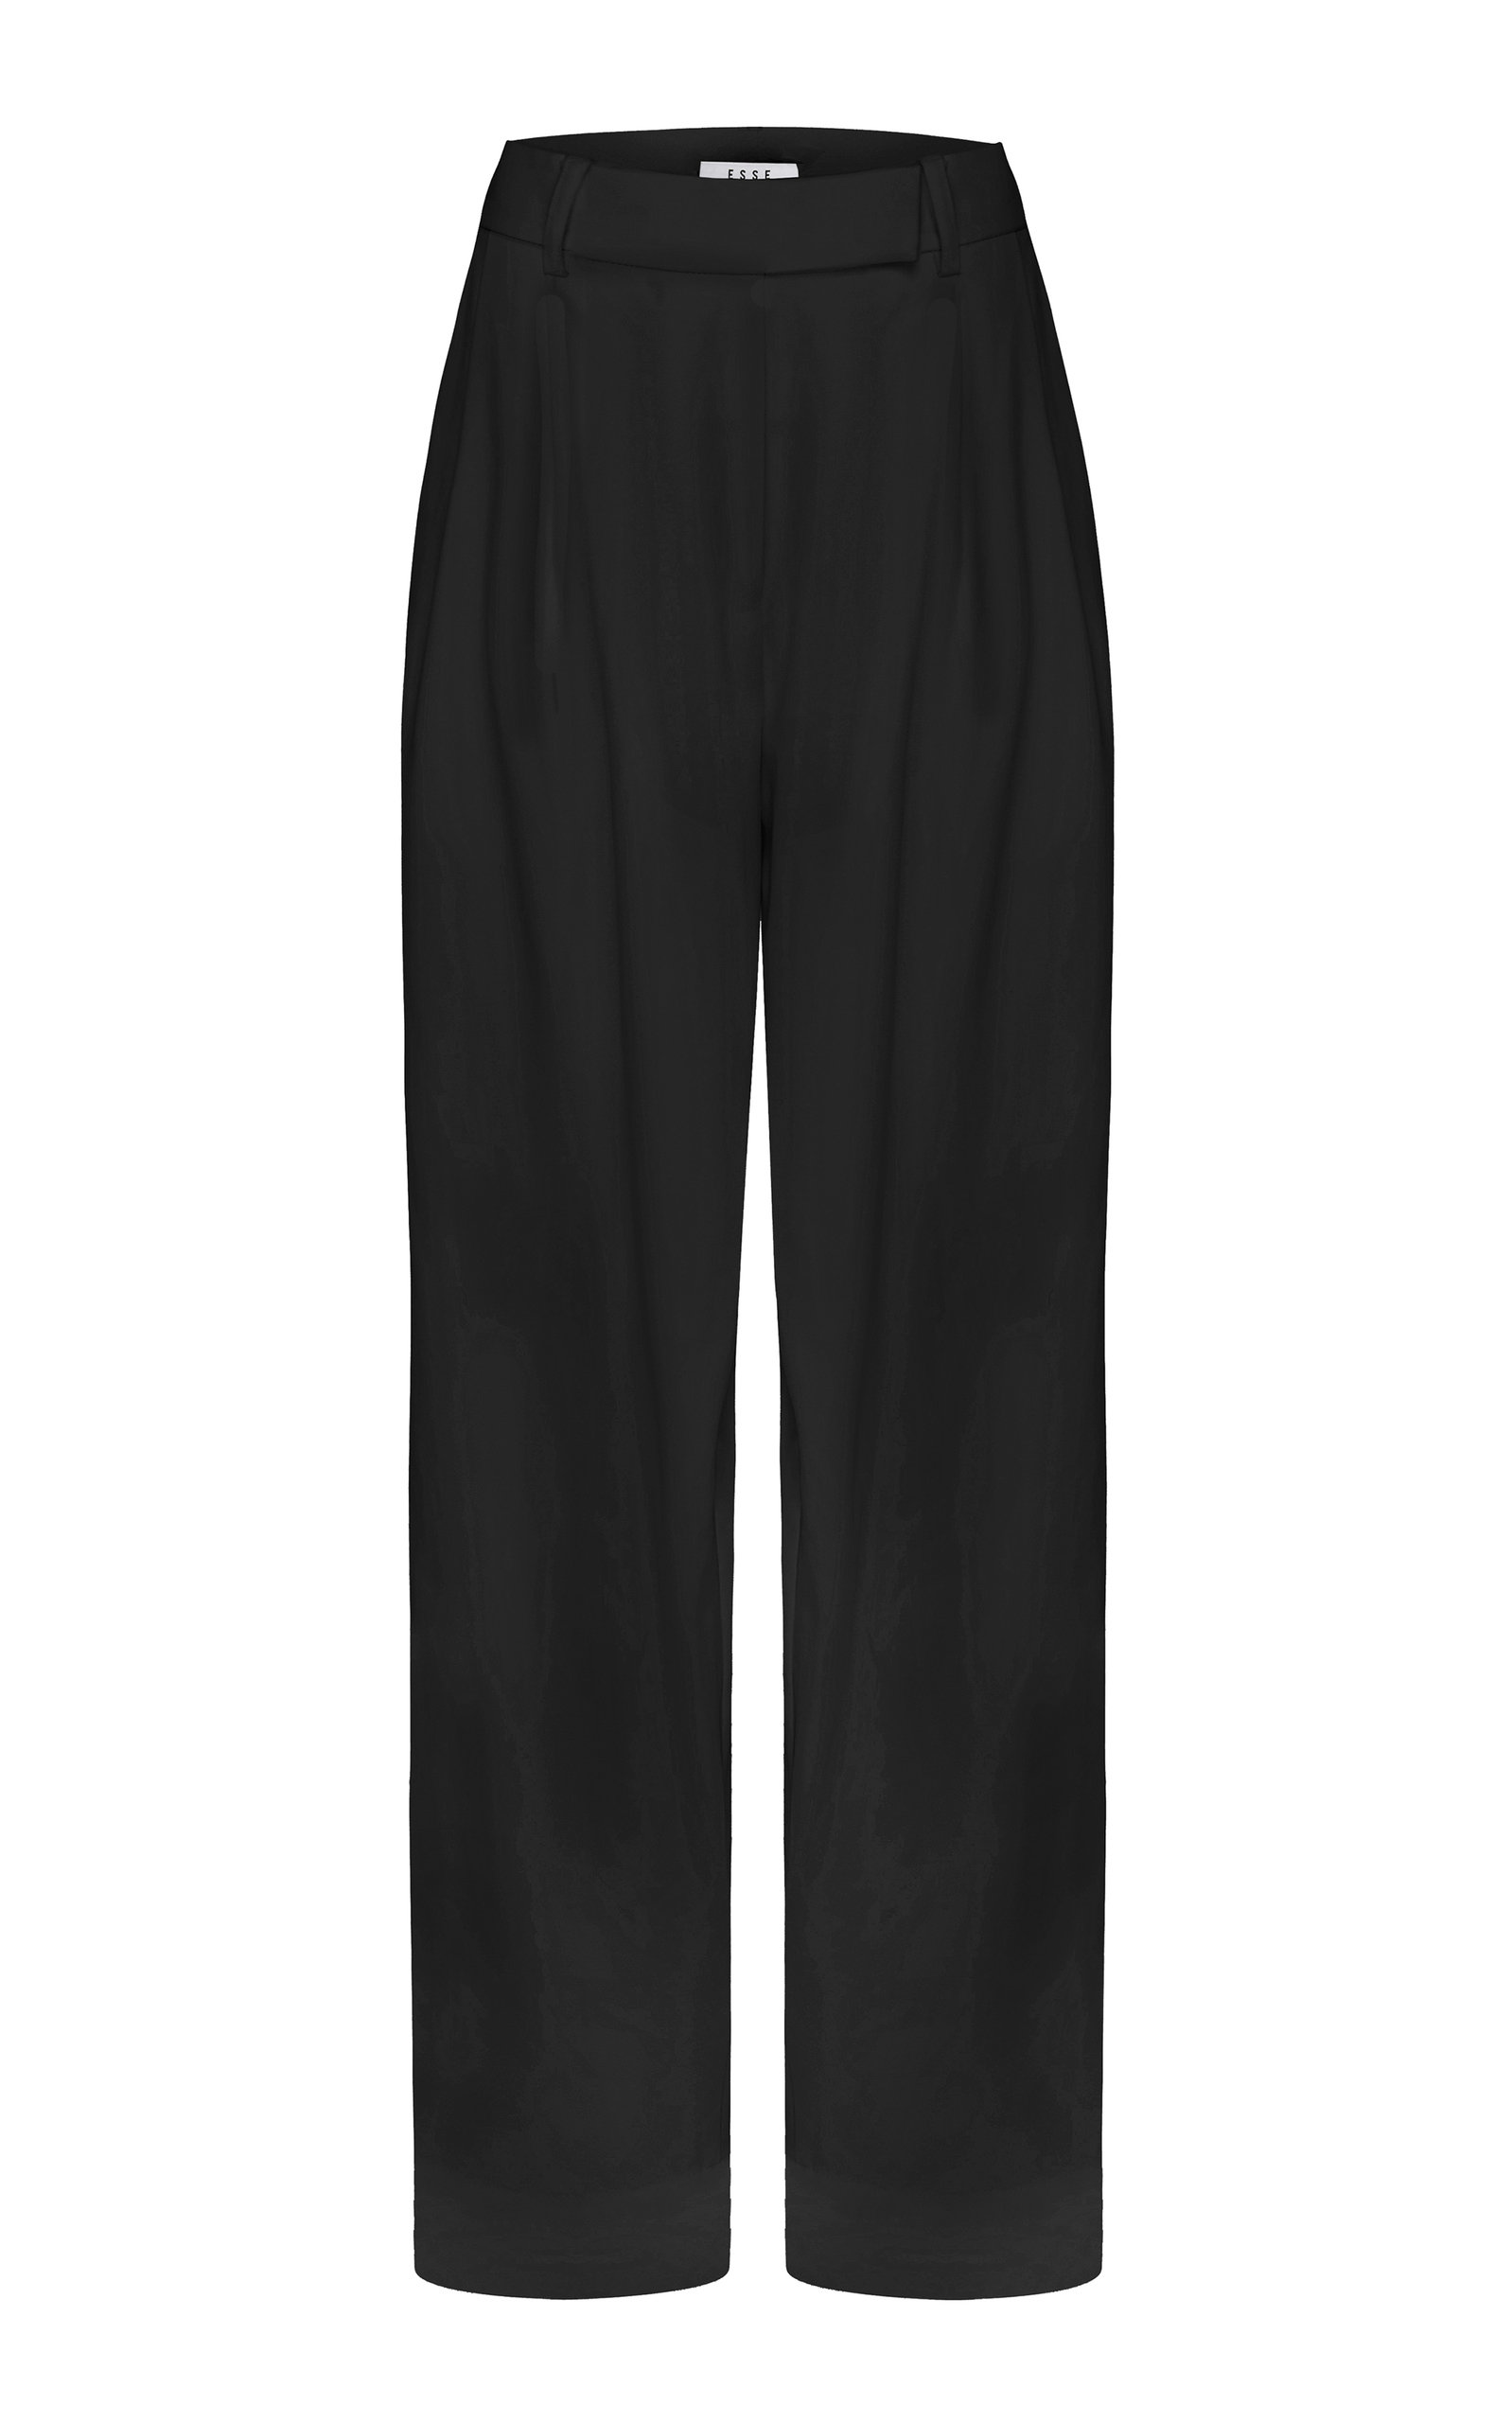 Women's Cotton-Blend Tailored Trousers